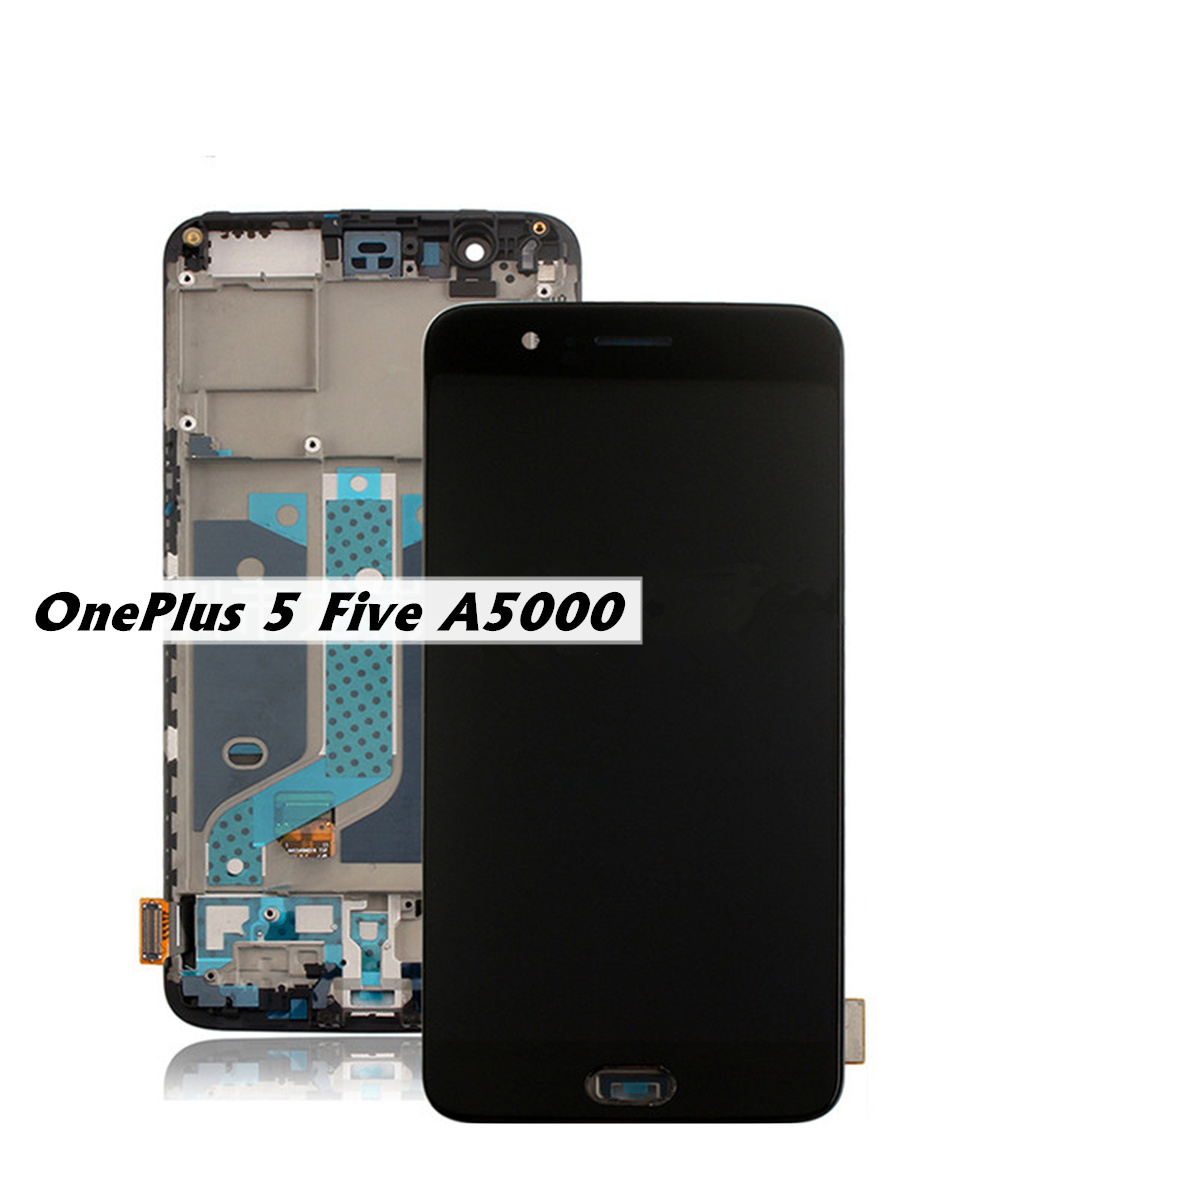 Assembly-For-Oneplus-5-A5000-LCD-Display-amp-Frame-Touch-Screen-Digitizer-Replace